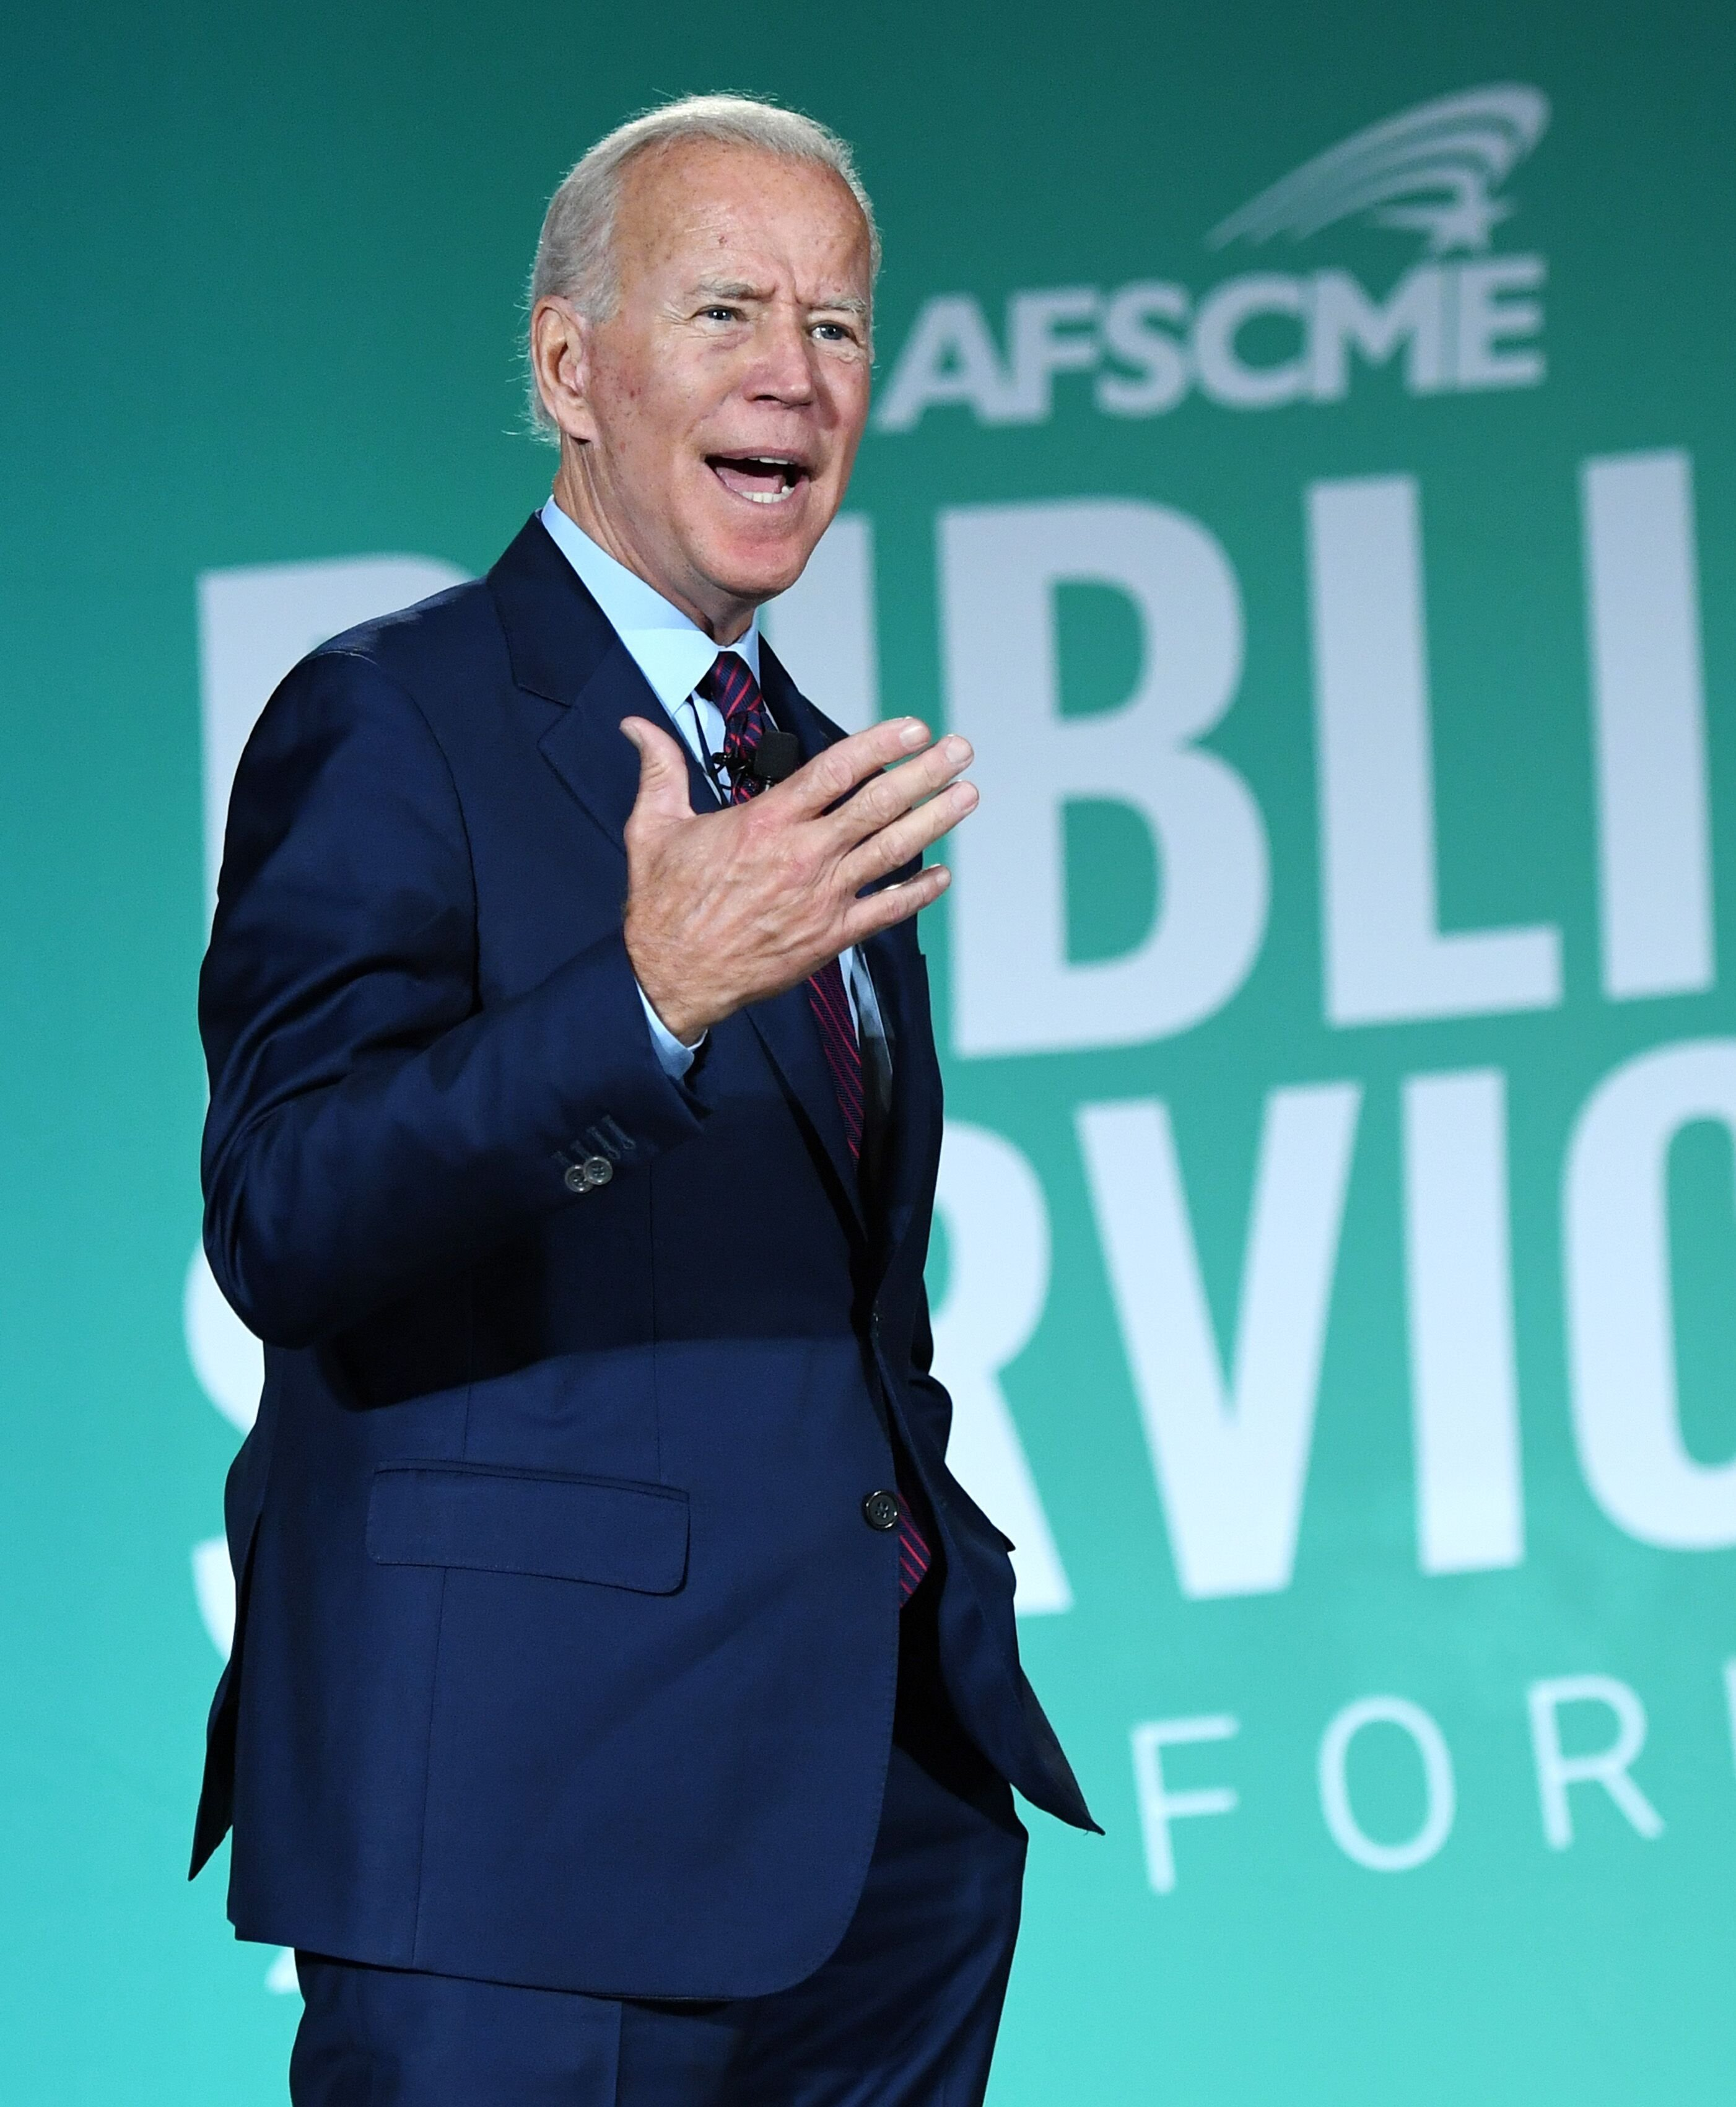 Joe Biden speaking at the AFSCME forum. | Source: Getty Images